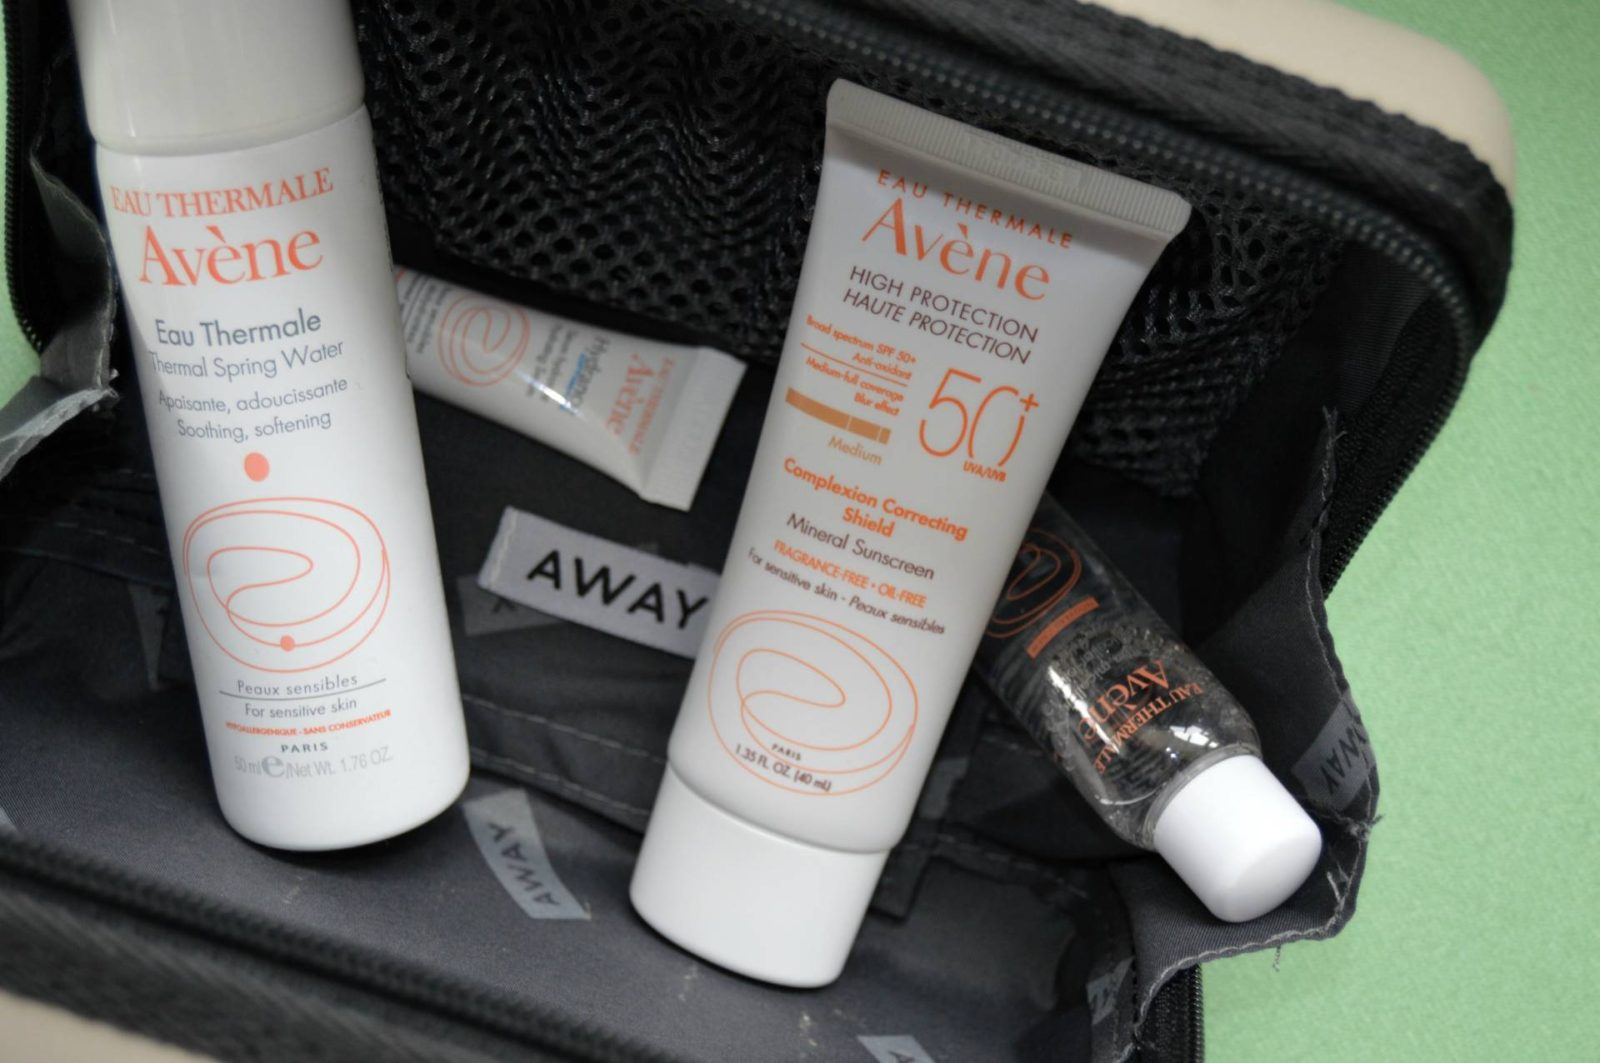 Moisture + Coverage + Sunscreen = Avène Complexion Correcting Shield SPF 50+